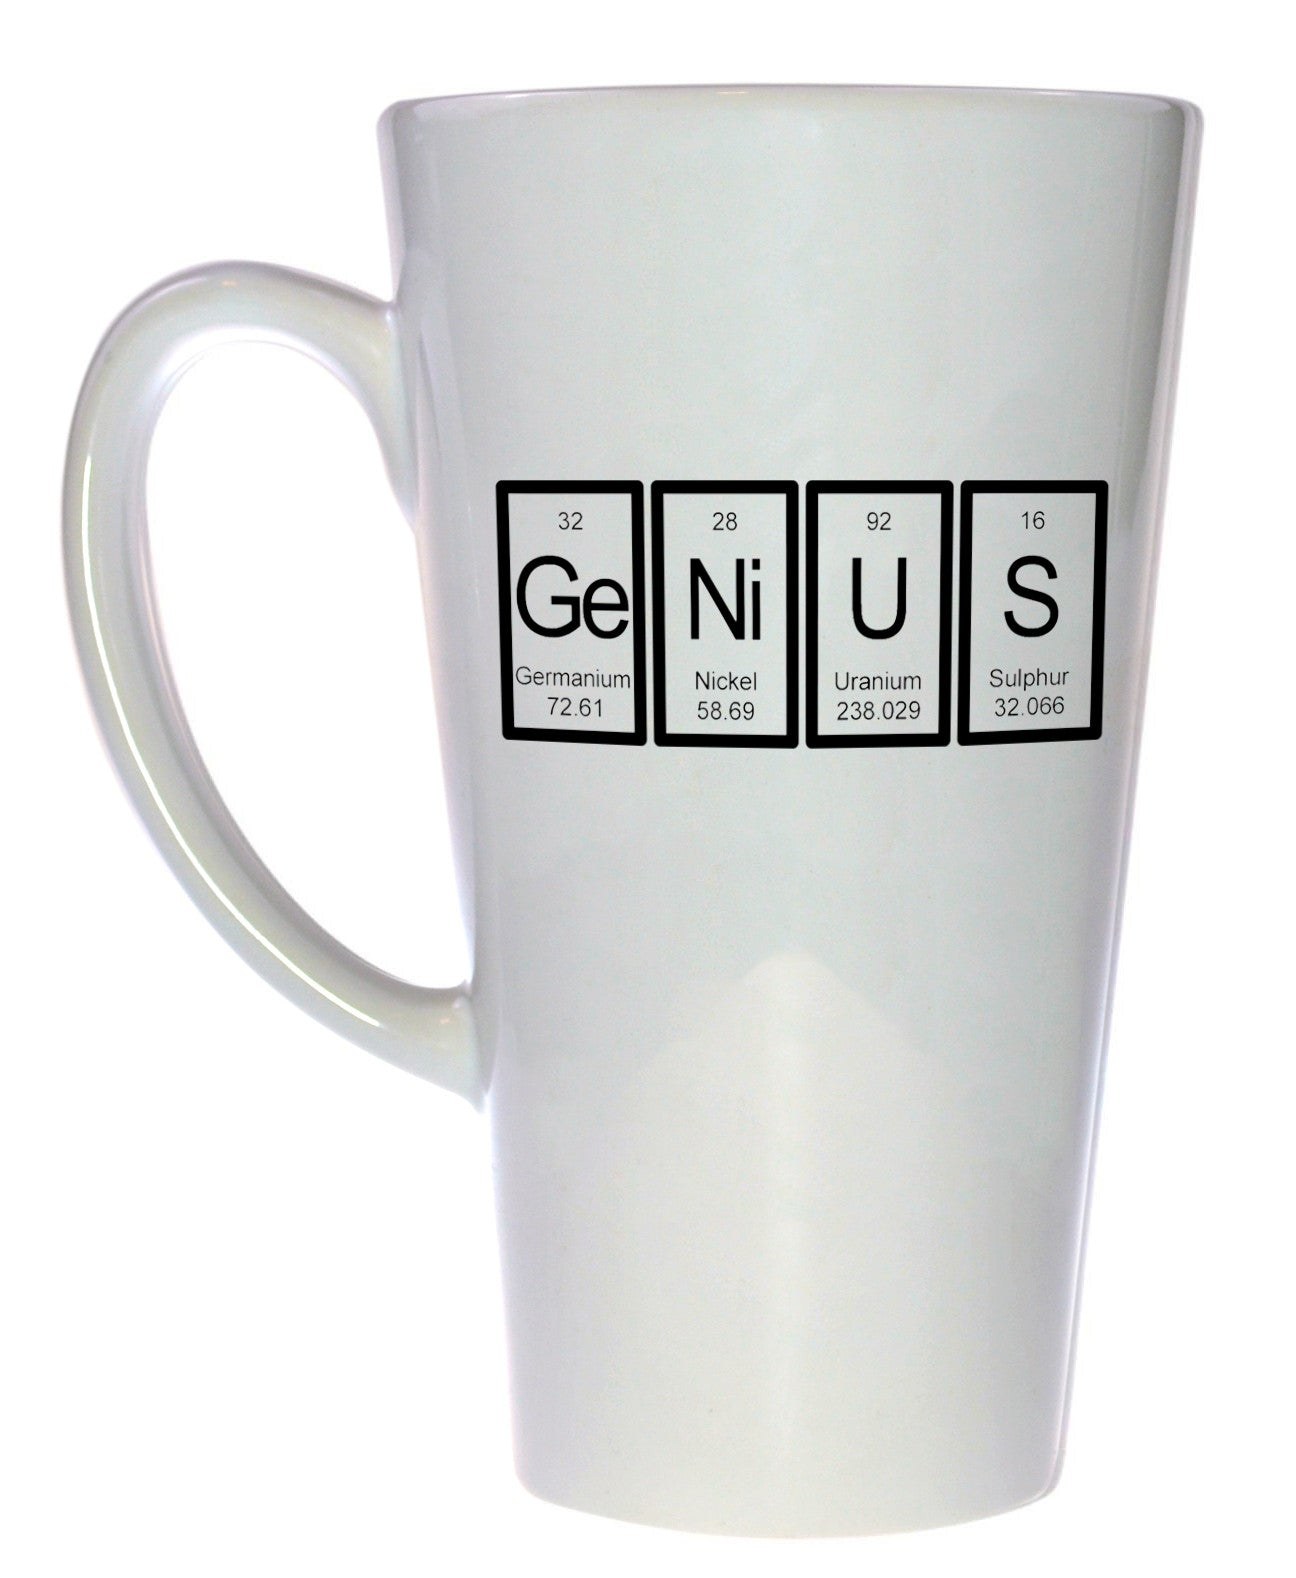 Genius periodic table of elements coffee or tea mug latte size genius periodic table of elements coffee or tea mug latte size urtaz Image collections